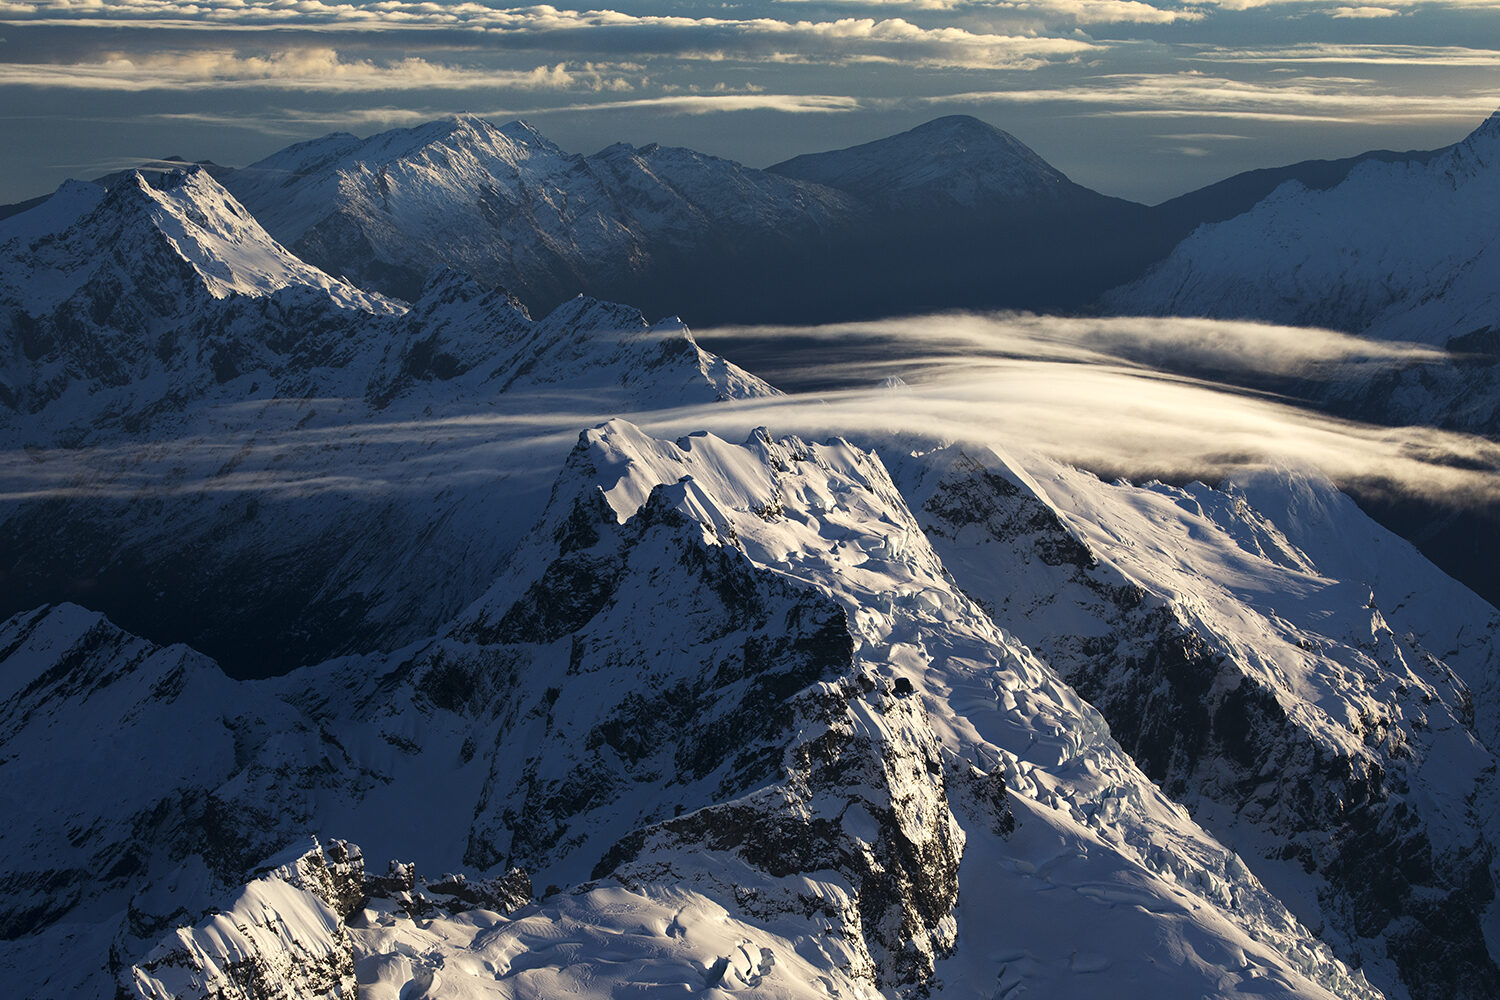 Southern Alps of New Zealand